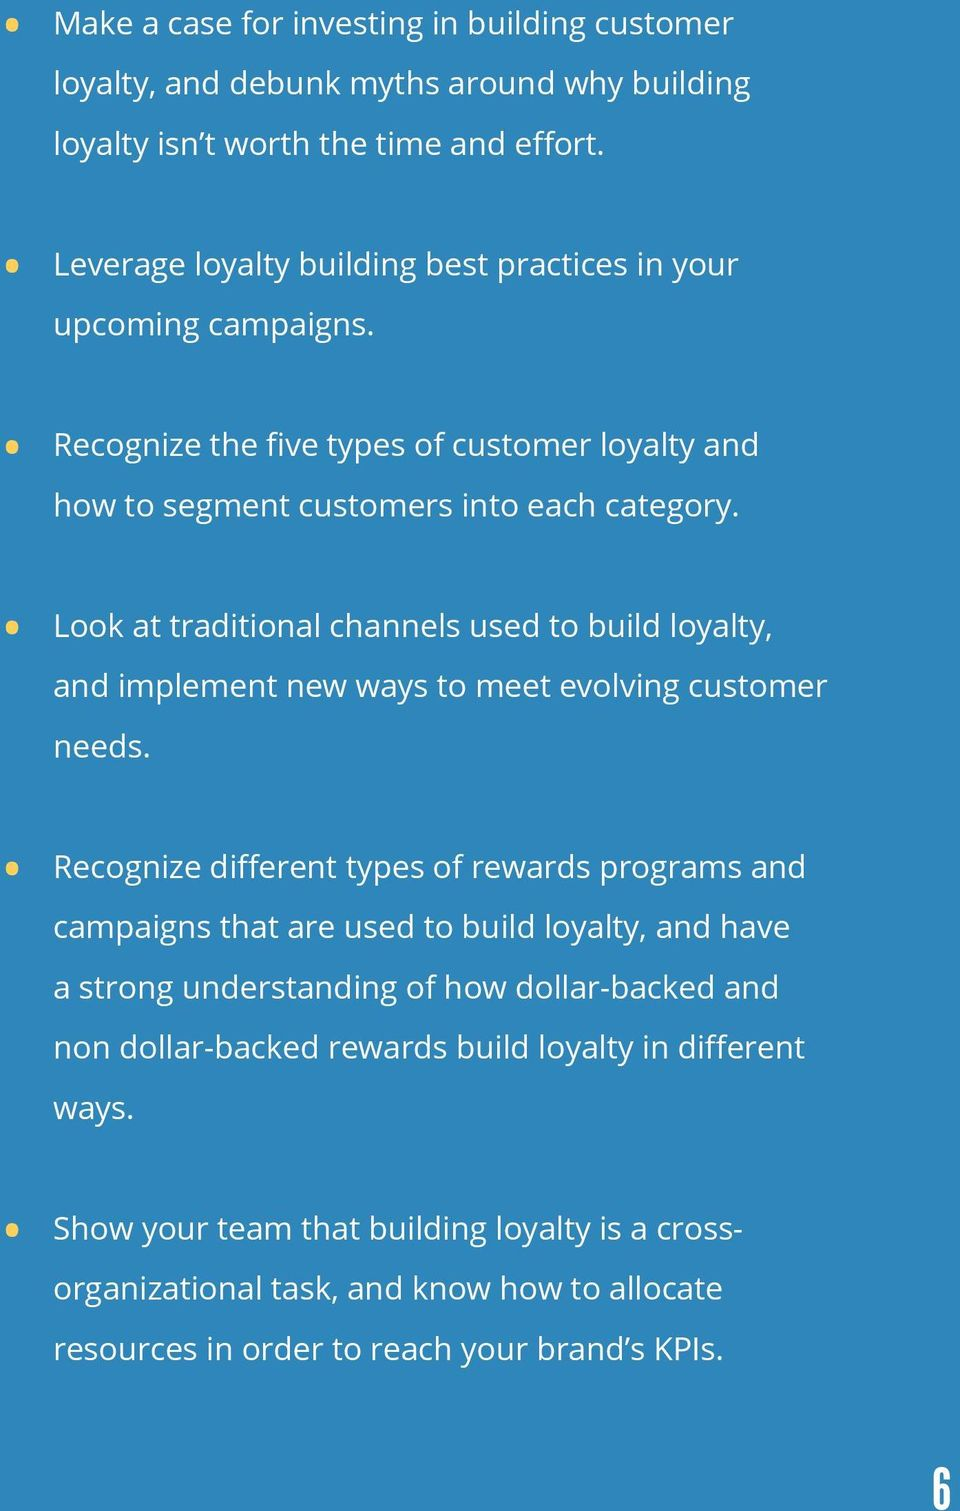 Look at traditional channels used to build loyalty, and implement new ways to meet evolving customer needs.